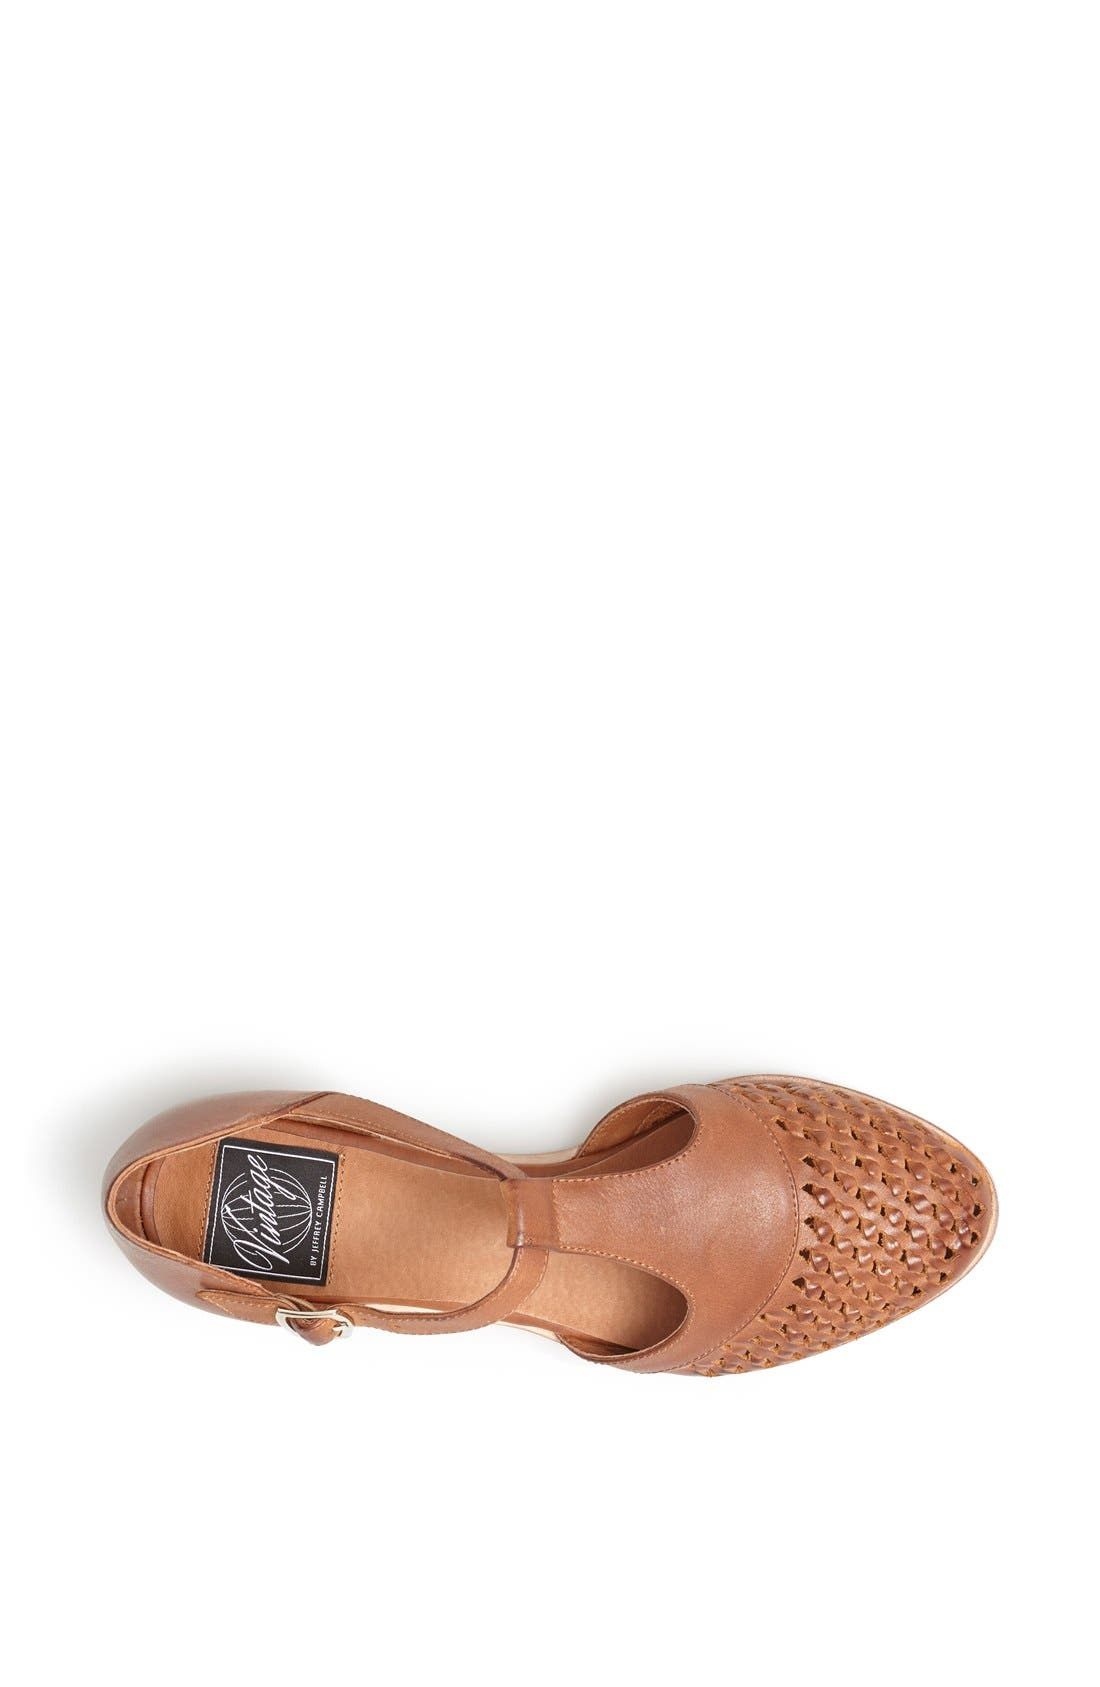 Alternate Image 3  - Jeffrey Campbell 'Calou' Flat